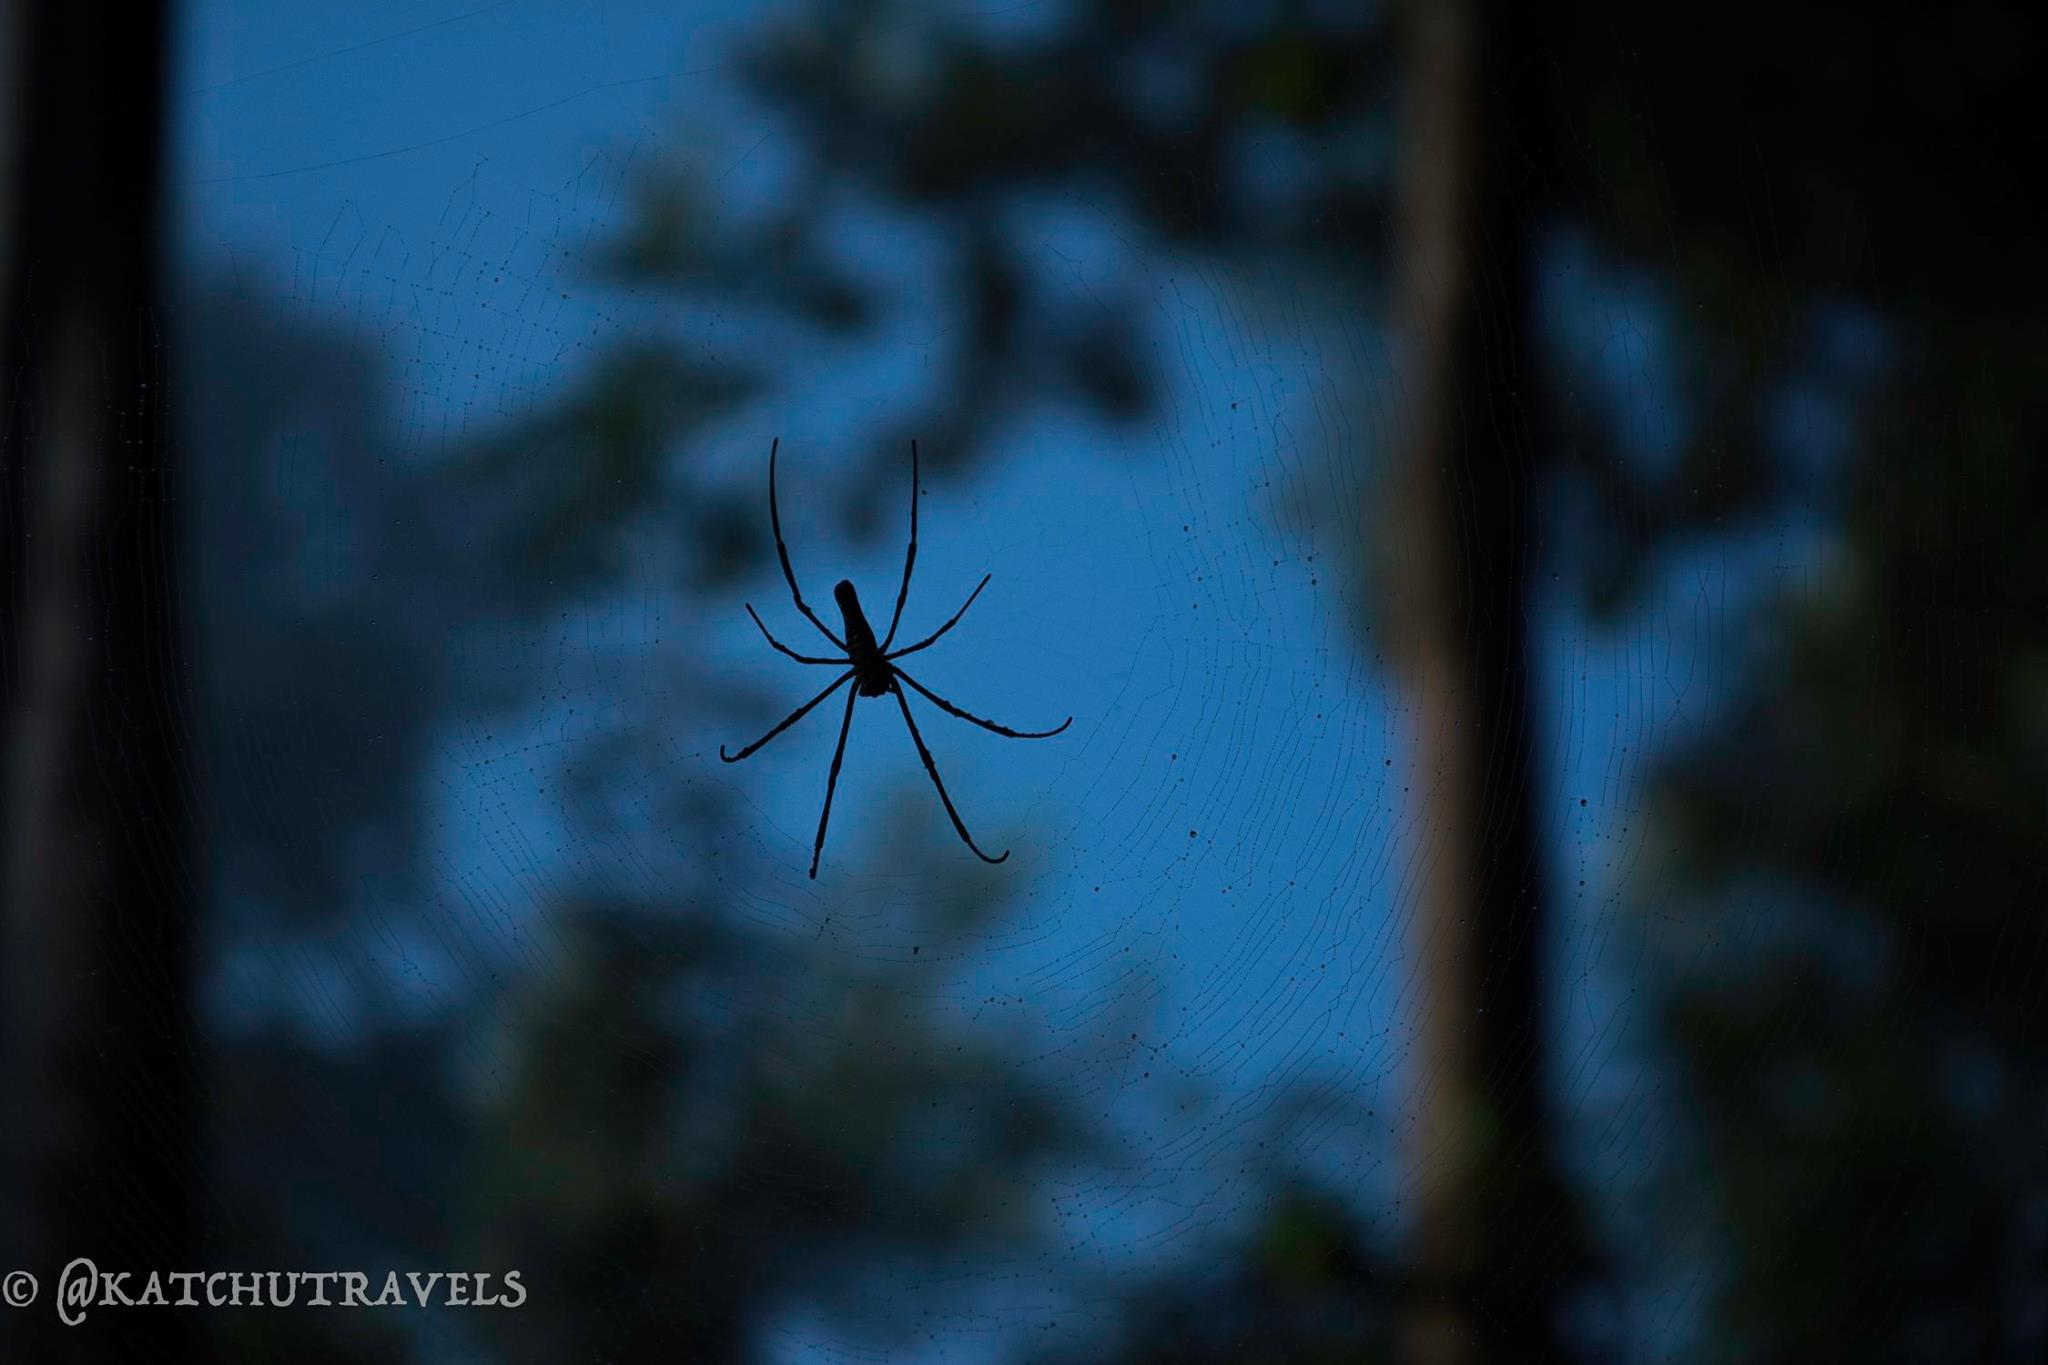 Spiders Web at Coorg